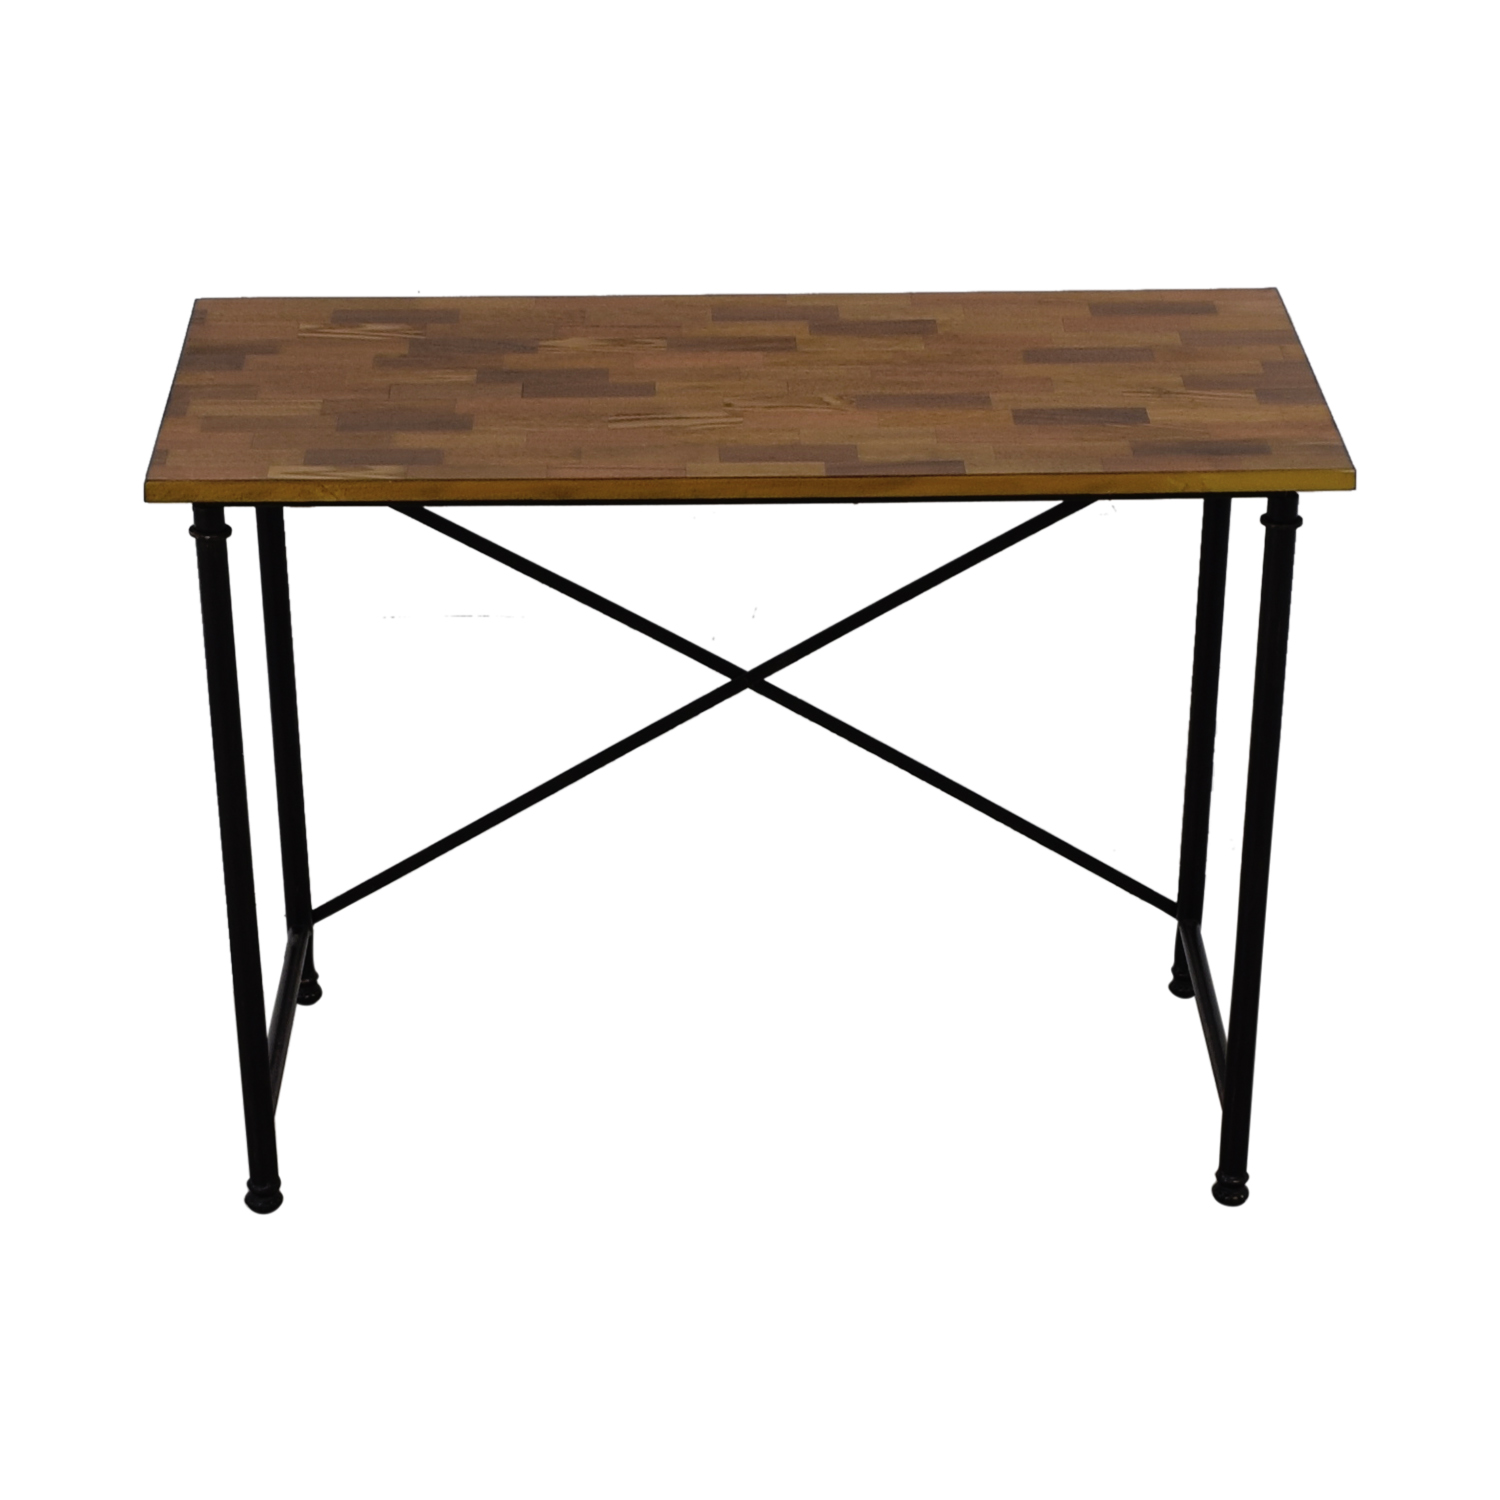 Wood and Metal Desk Tables